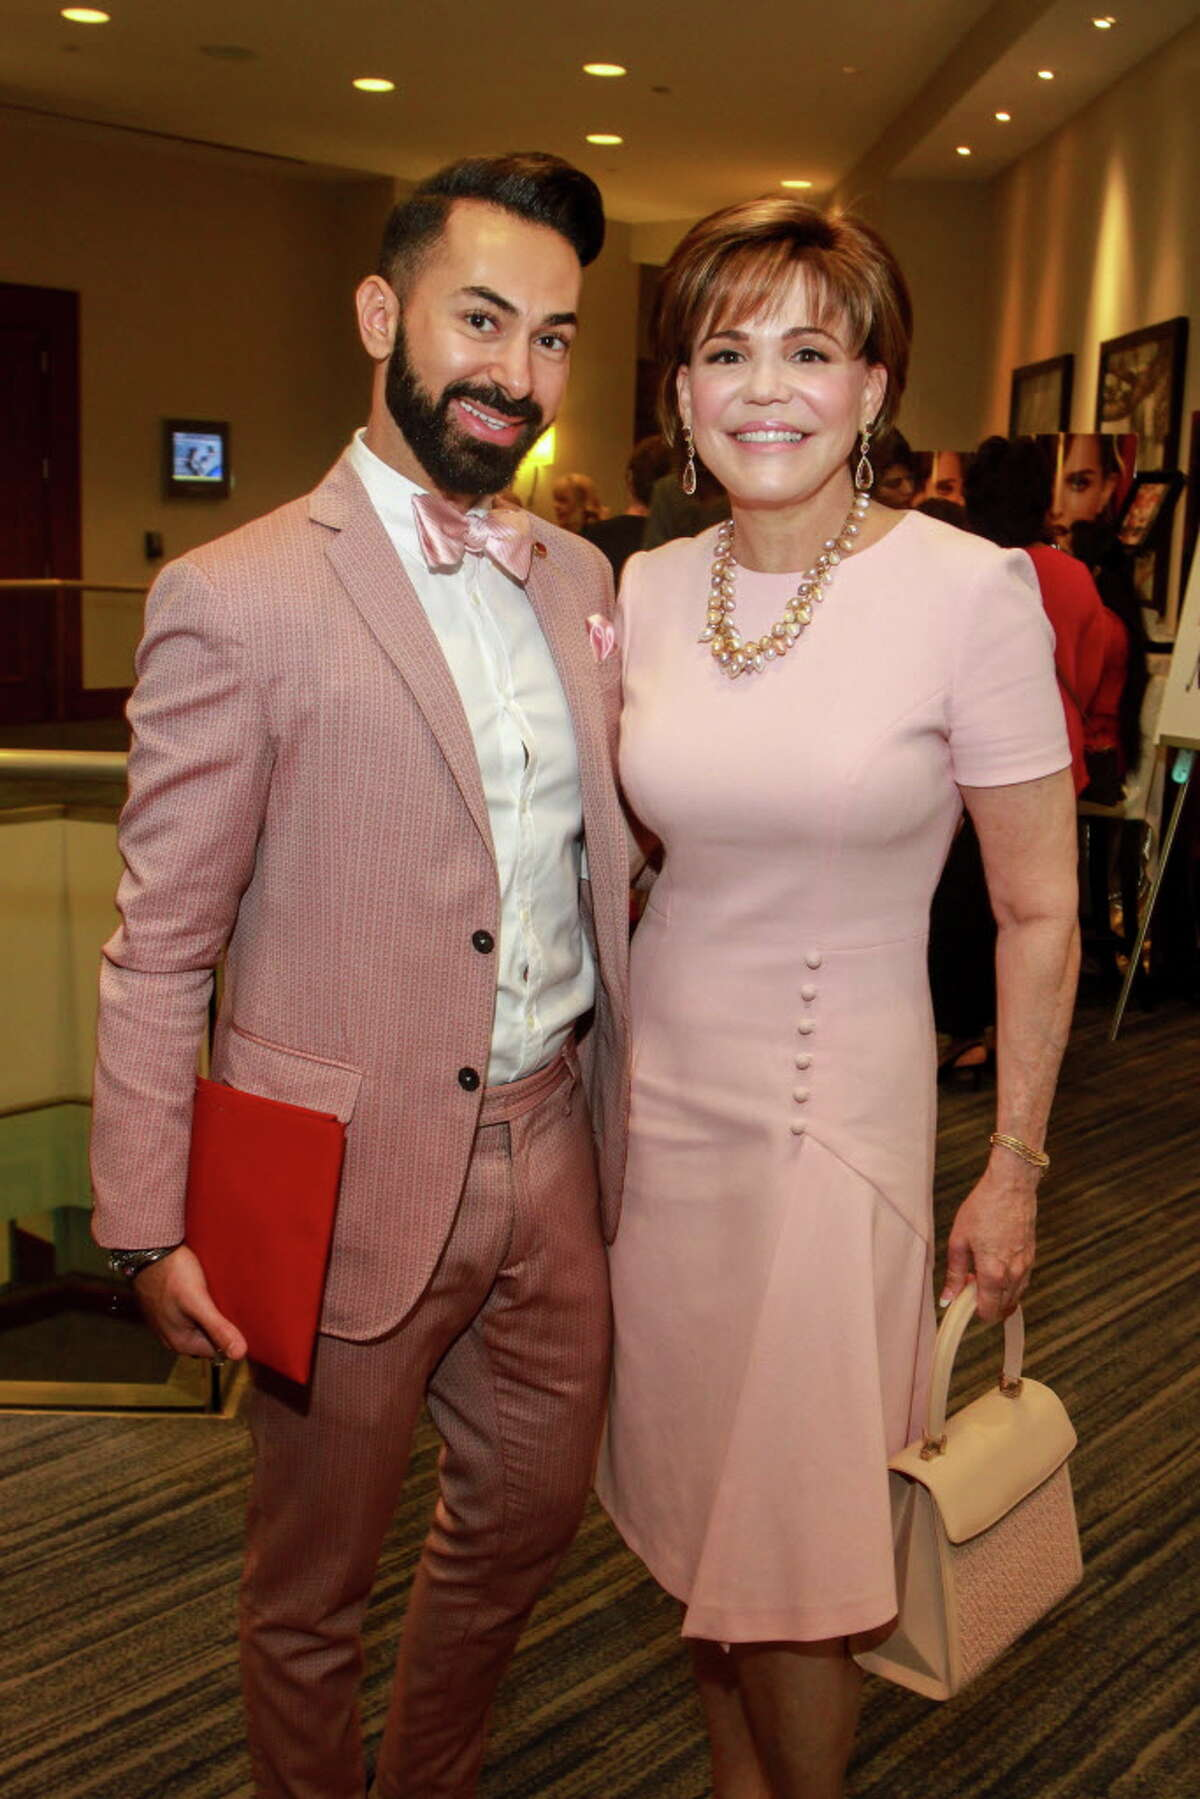 Fady Armanious and honoree Hallie Vanderhider at the Memorial Hermann Razzle Dazzle luncheon at the Westin Memorial City. (For the Chronicle/Gary Fountain, October 12, 2017)